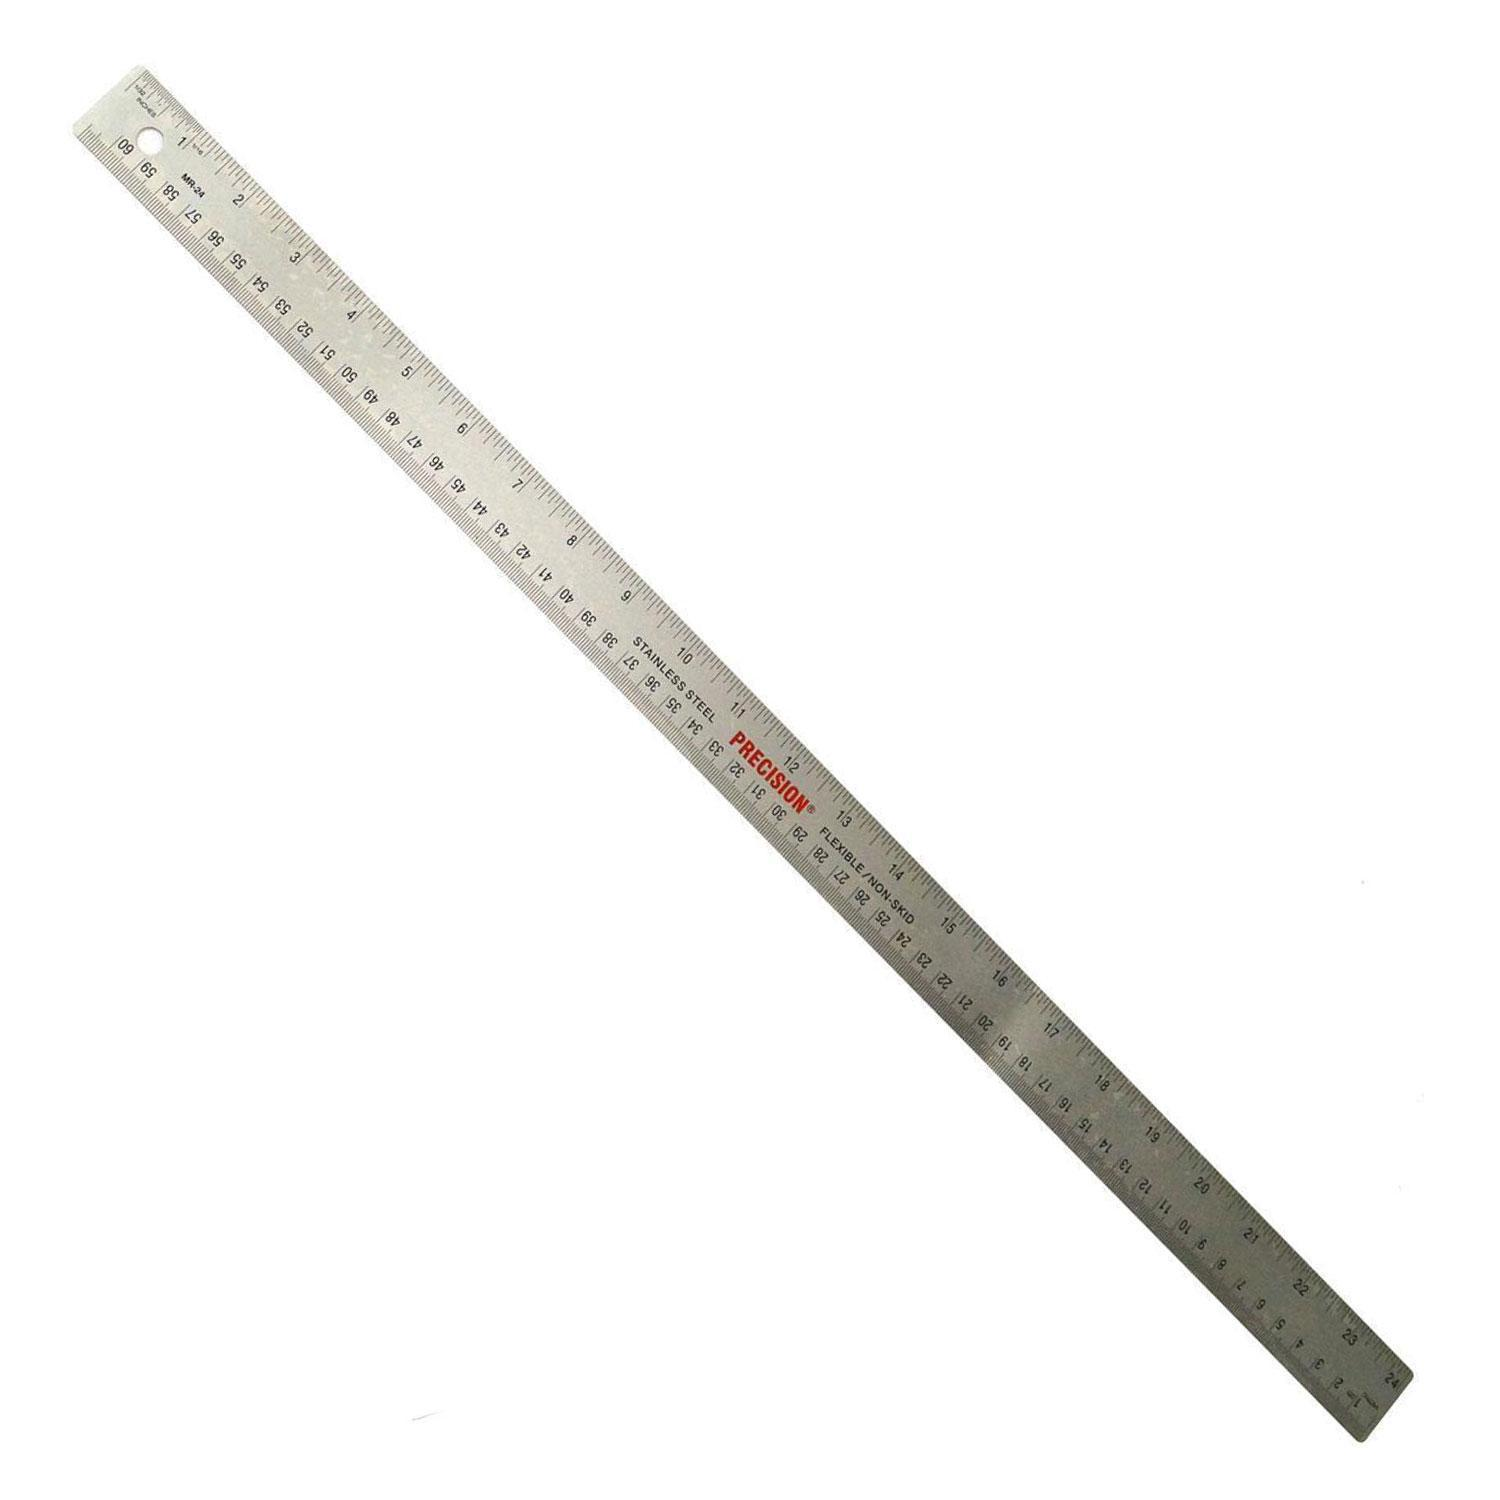 Cork Backed Stainless Steel Ruler